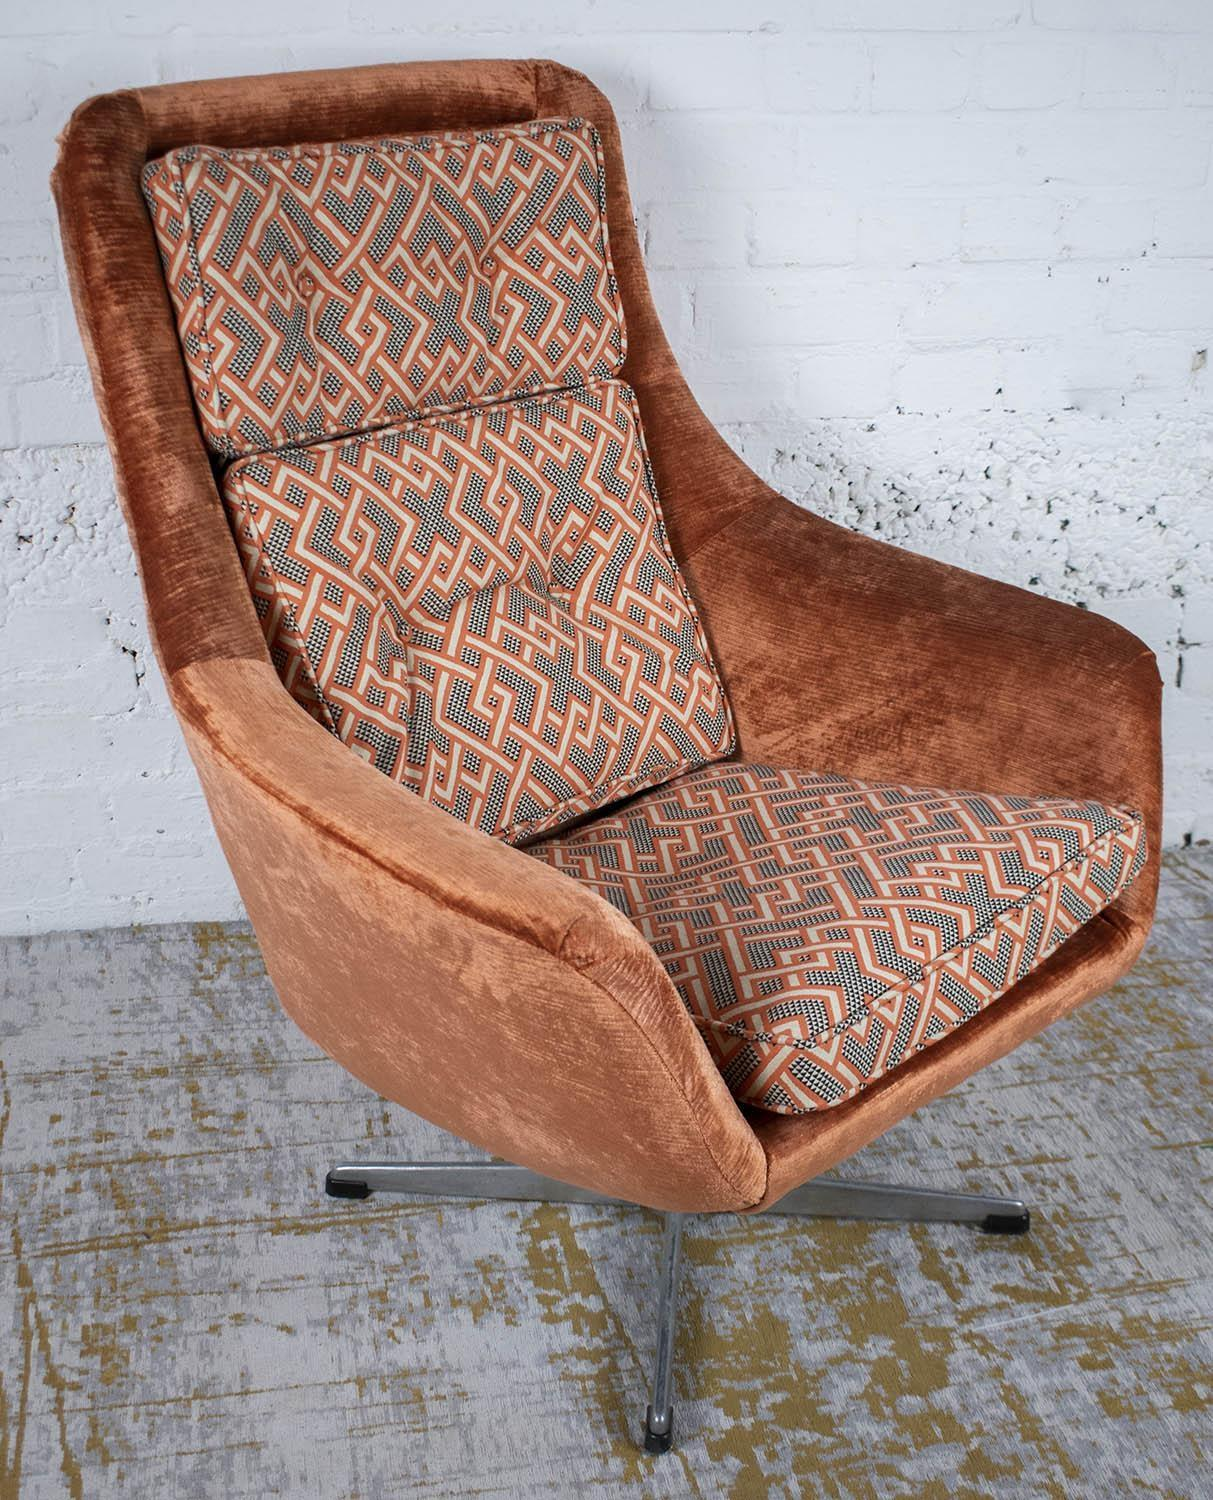 SWIVEL CHAIR, mid 20th century Swedish in Linwood peach, black and white geometric material and